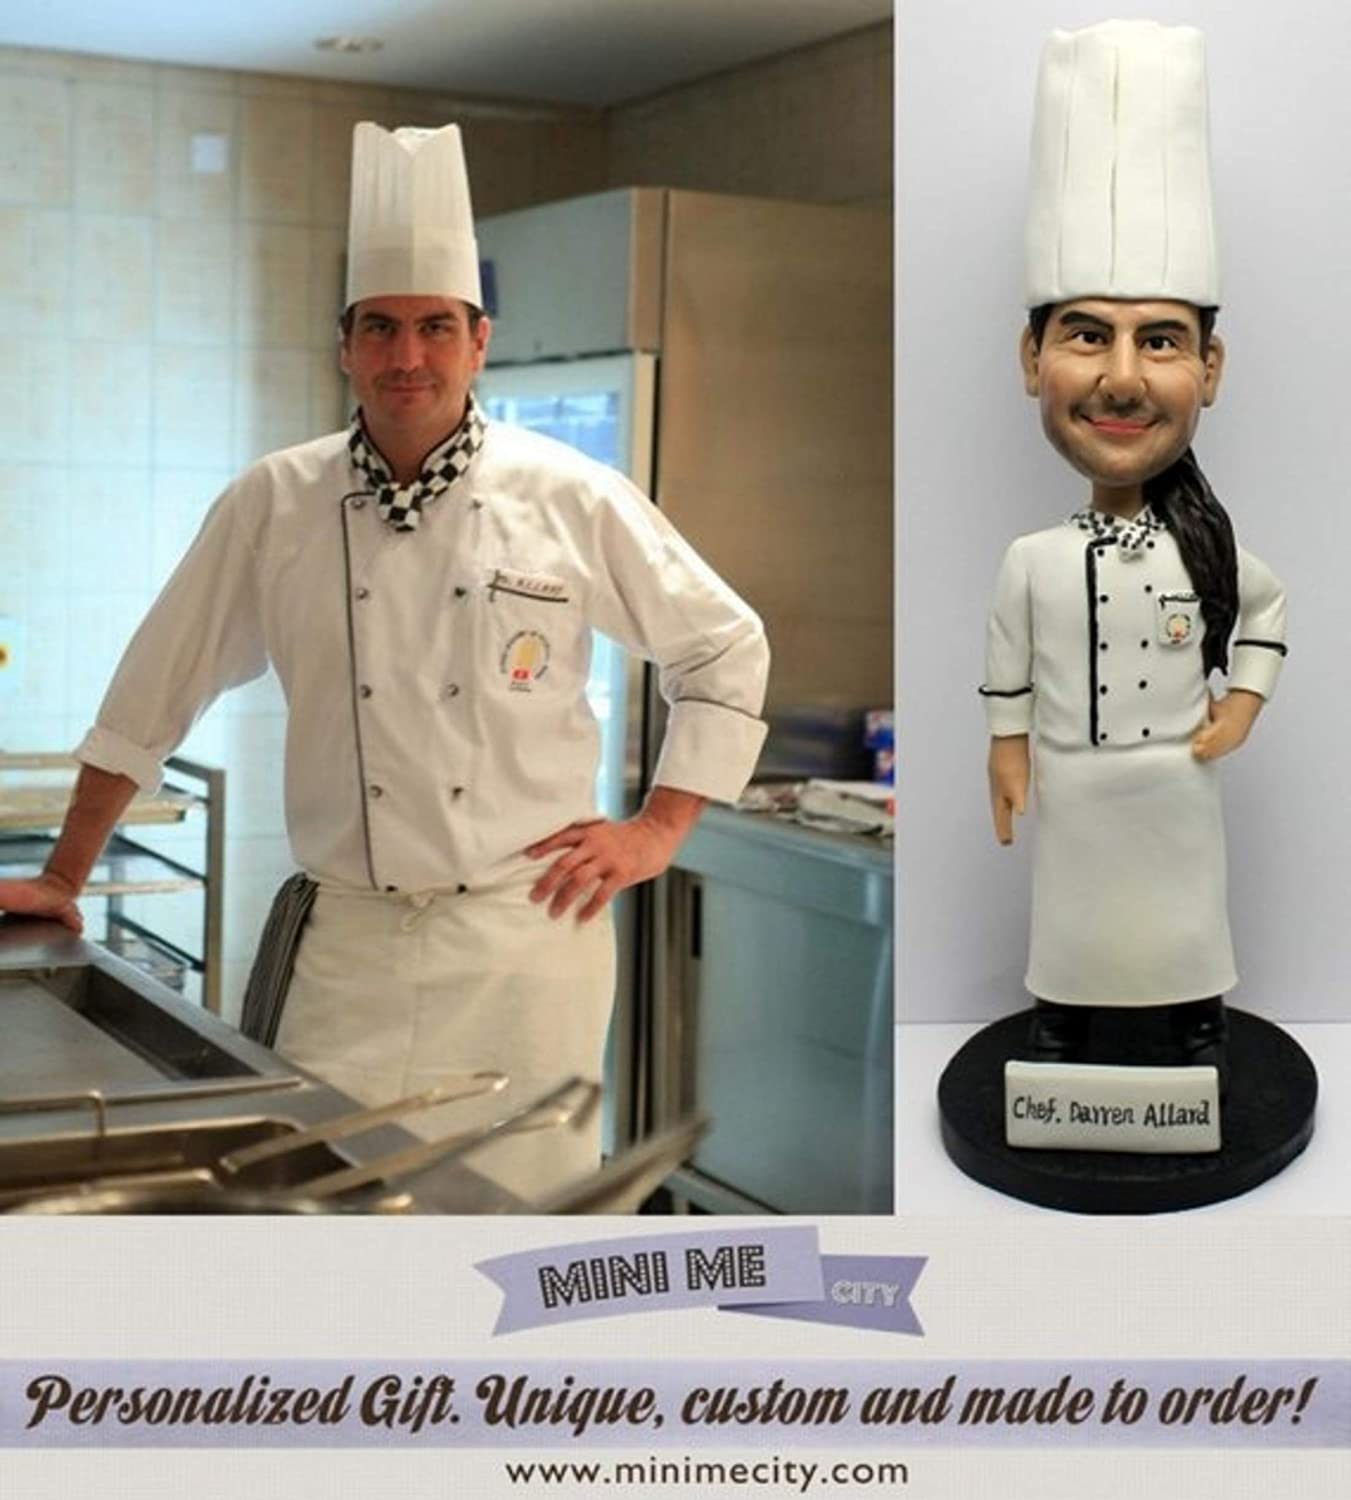 Custom Cook Gift Single Figure Cake Topper, Polymer Clay Cake Topper Sous Chef Gift/Unique Cook Gifts/Cook Gifts for Men Figurine.